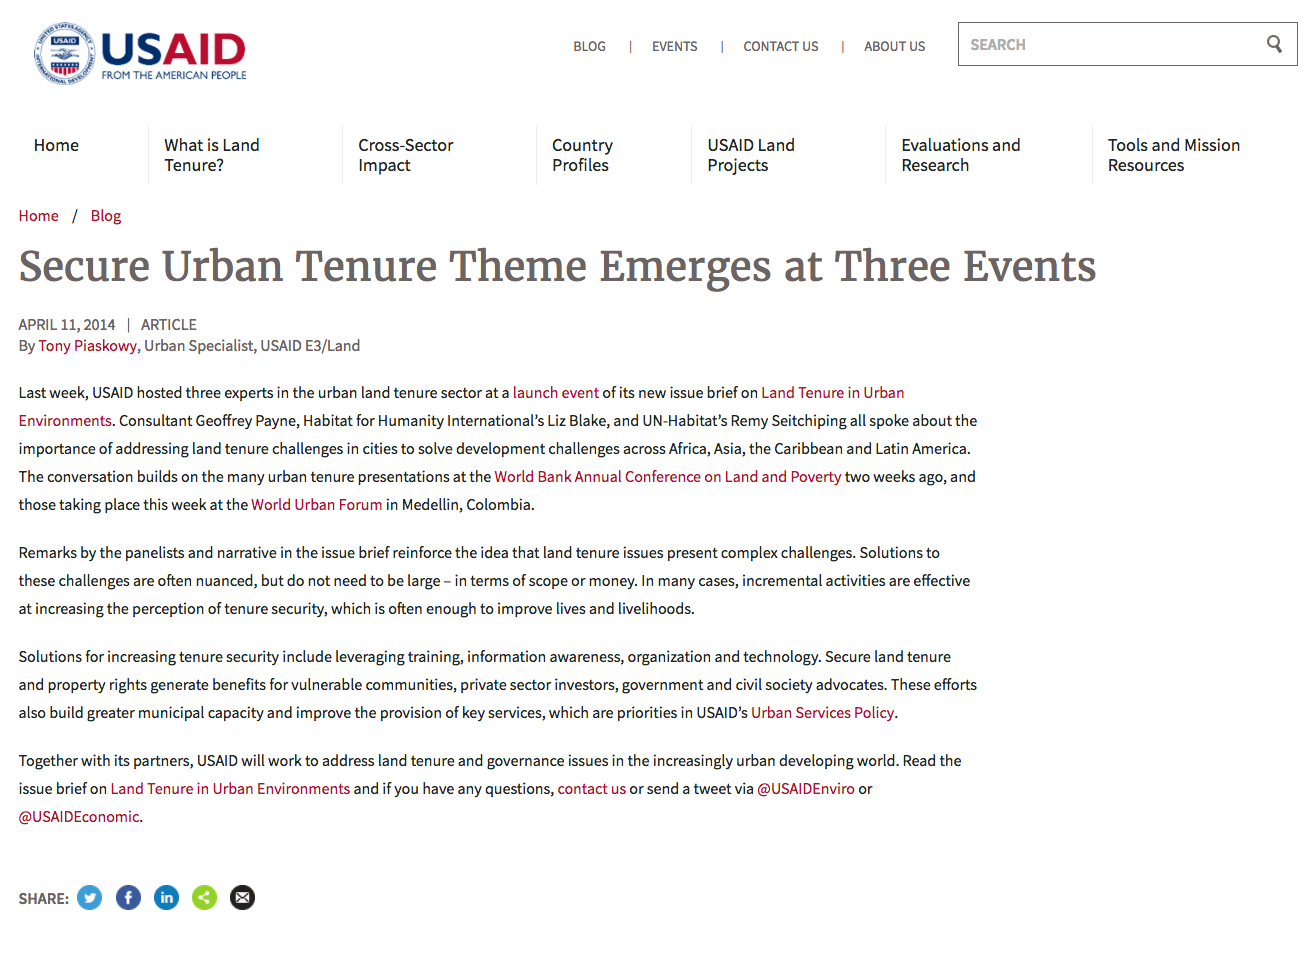 Secure Urban Tenure Theme Emerges at Three Events cover image